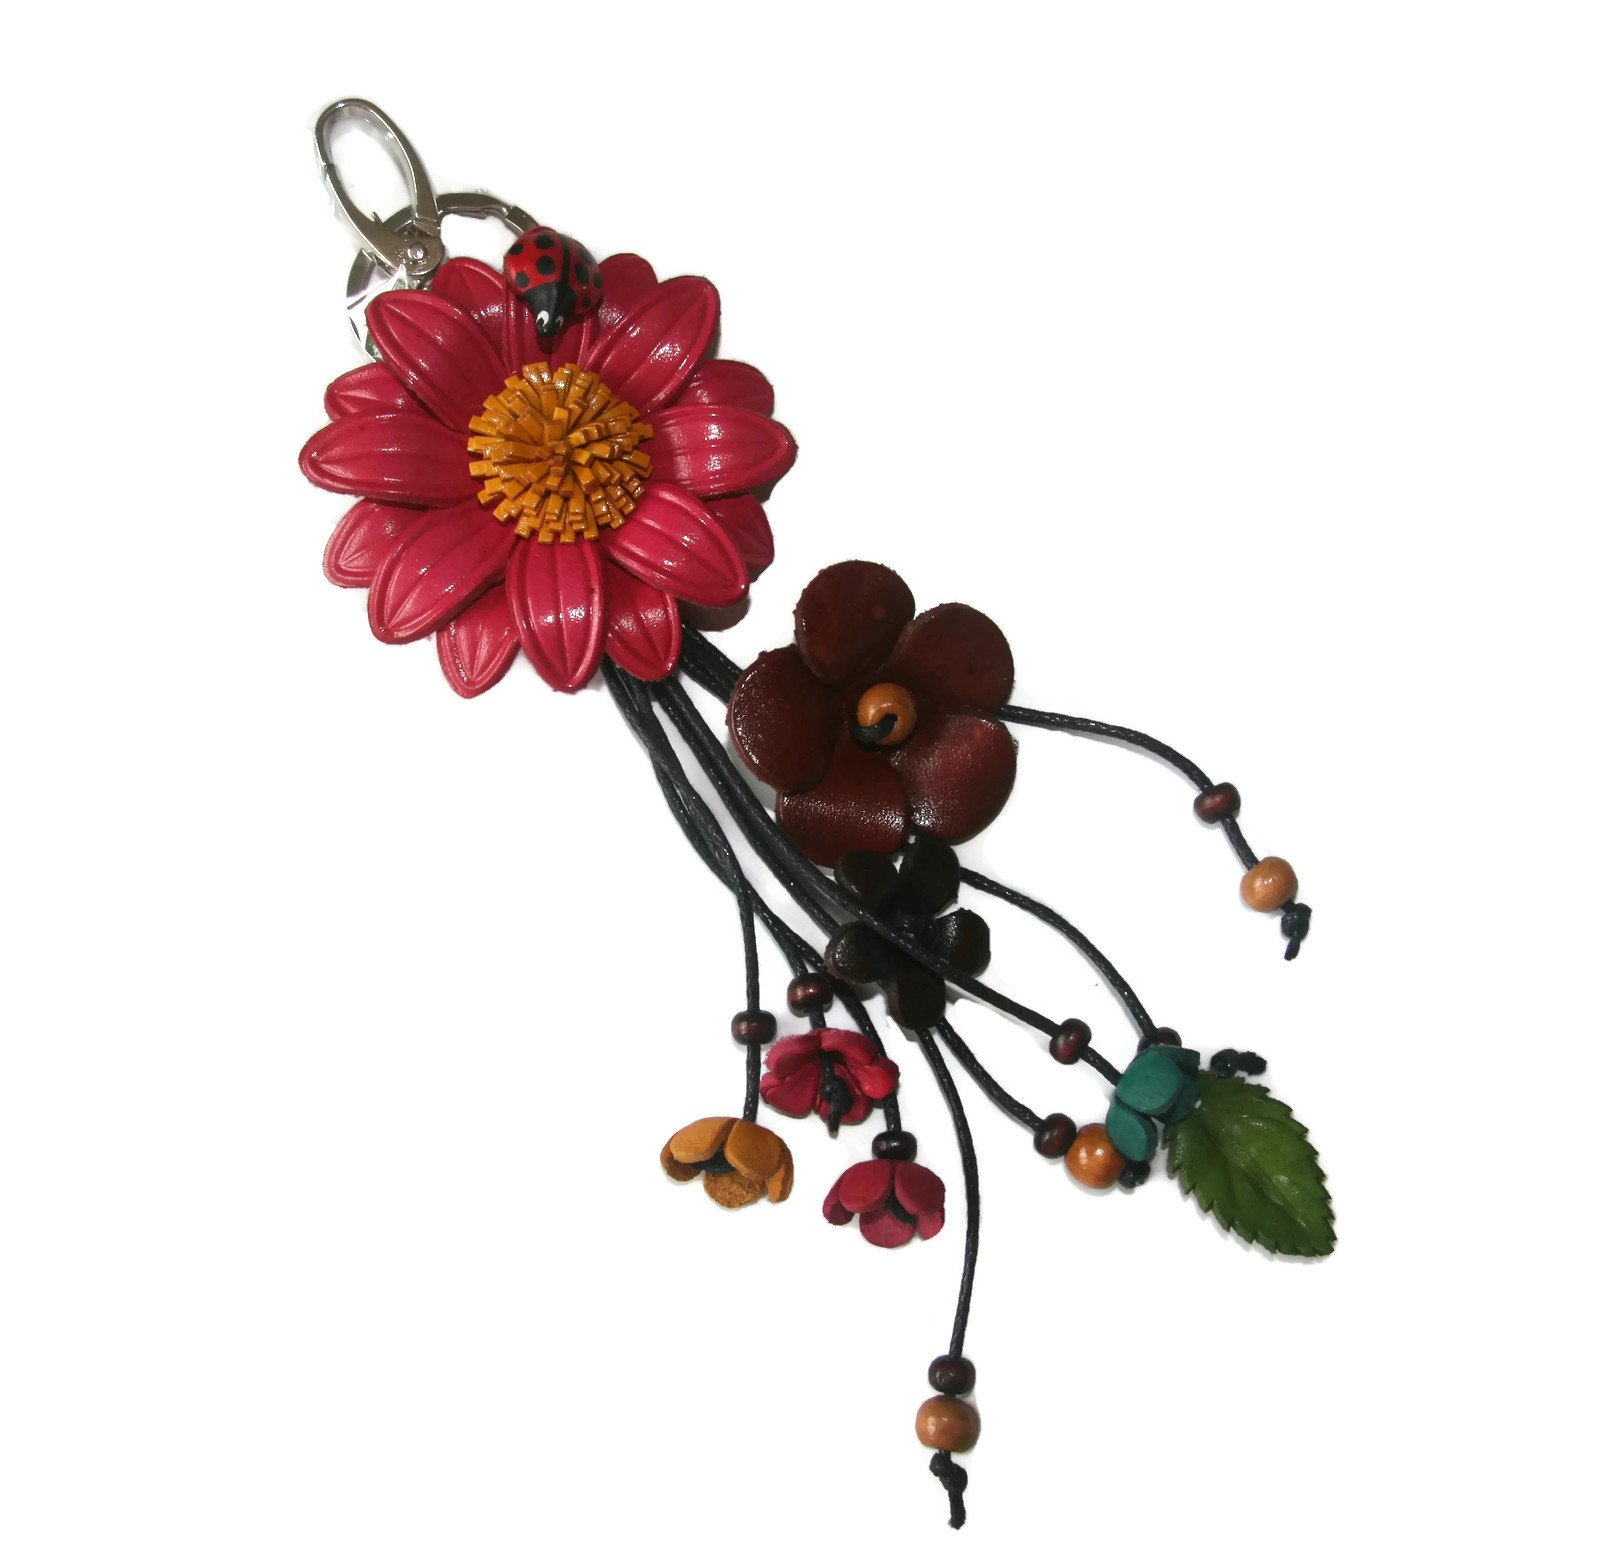 Bella Pazzo Raspberry Pink Handmade Sunflower Flower Leather Keychain Key Ring Clasp Bag Charm Handbag Purse charm Car Key Pendant